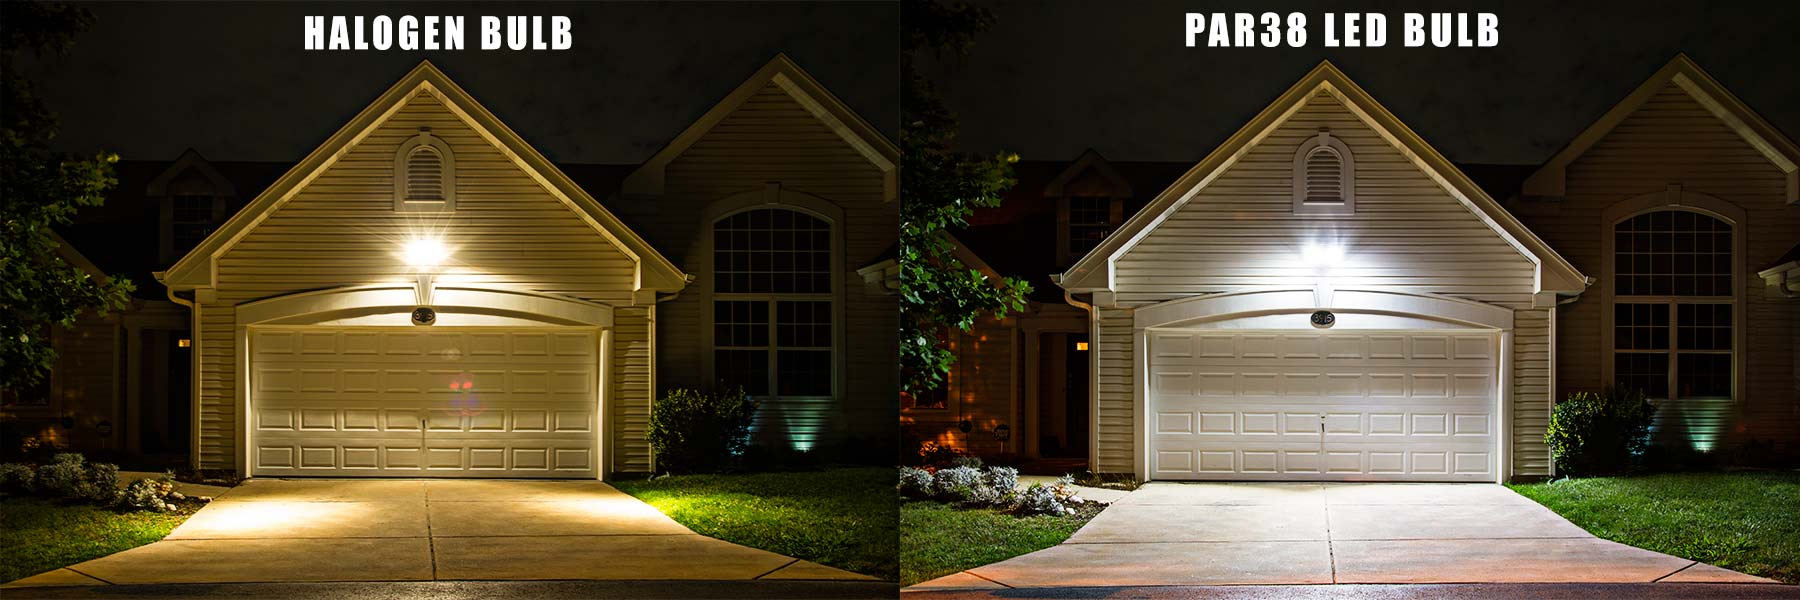 Landscape Lighting Led